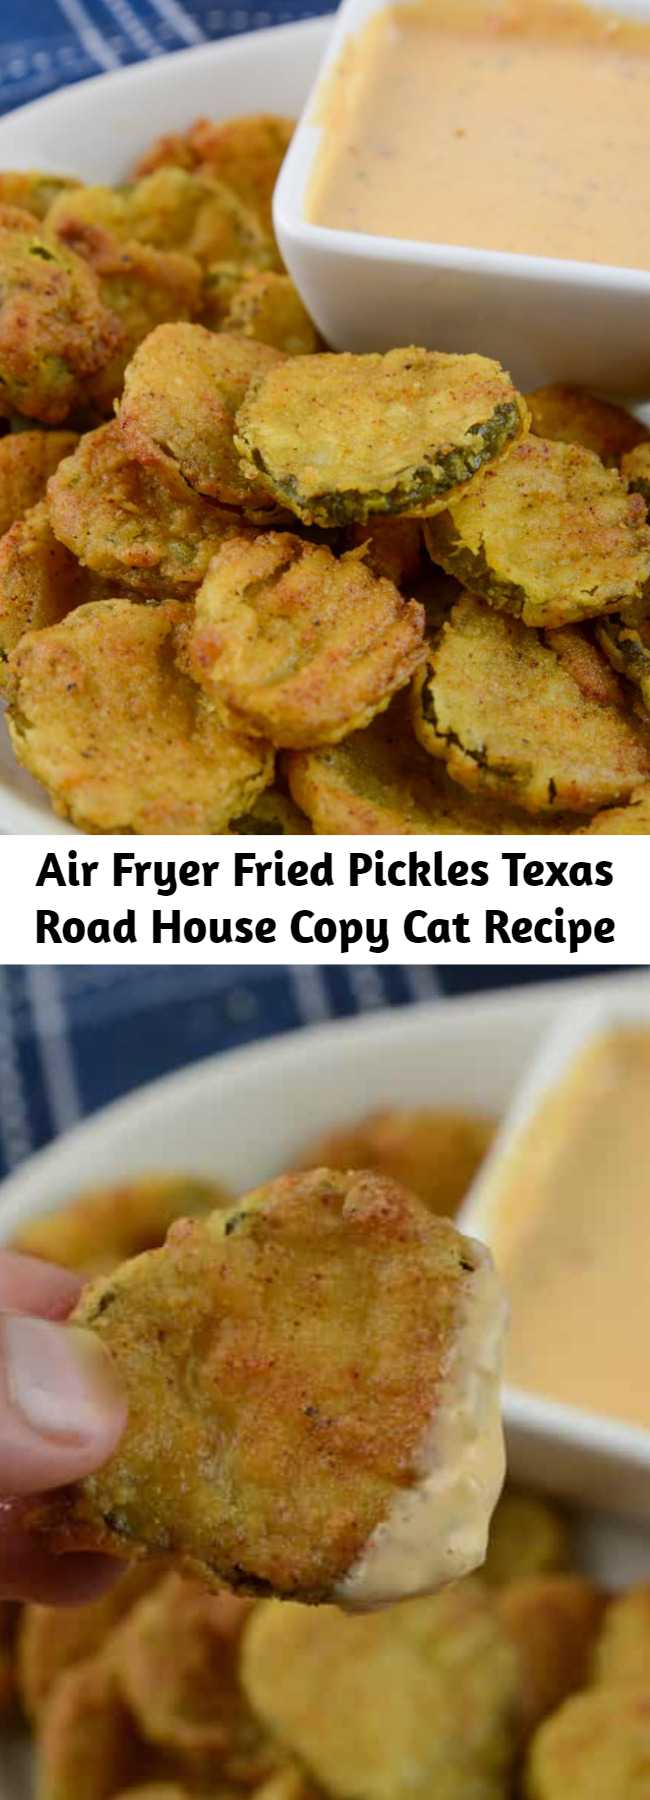 Air Fryer Fried Pickles Texas Road House Copy Cat Recipe - One of my favorites! This is a Texas Road House Copycat Fried Pickle recipe. To make it even better it is made right in the air fryer. Serve it as an appetizer as you root on your favorite team on Sunday night football, or a side dish paired next to a juicy hamburger. No matter how you serve up these gems, they are dynamite in flavor. #CopyCat #Airfryer #Appetizer #FriedPickles